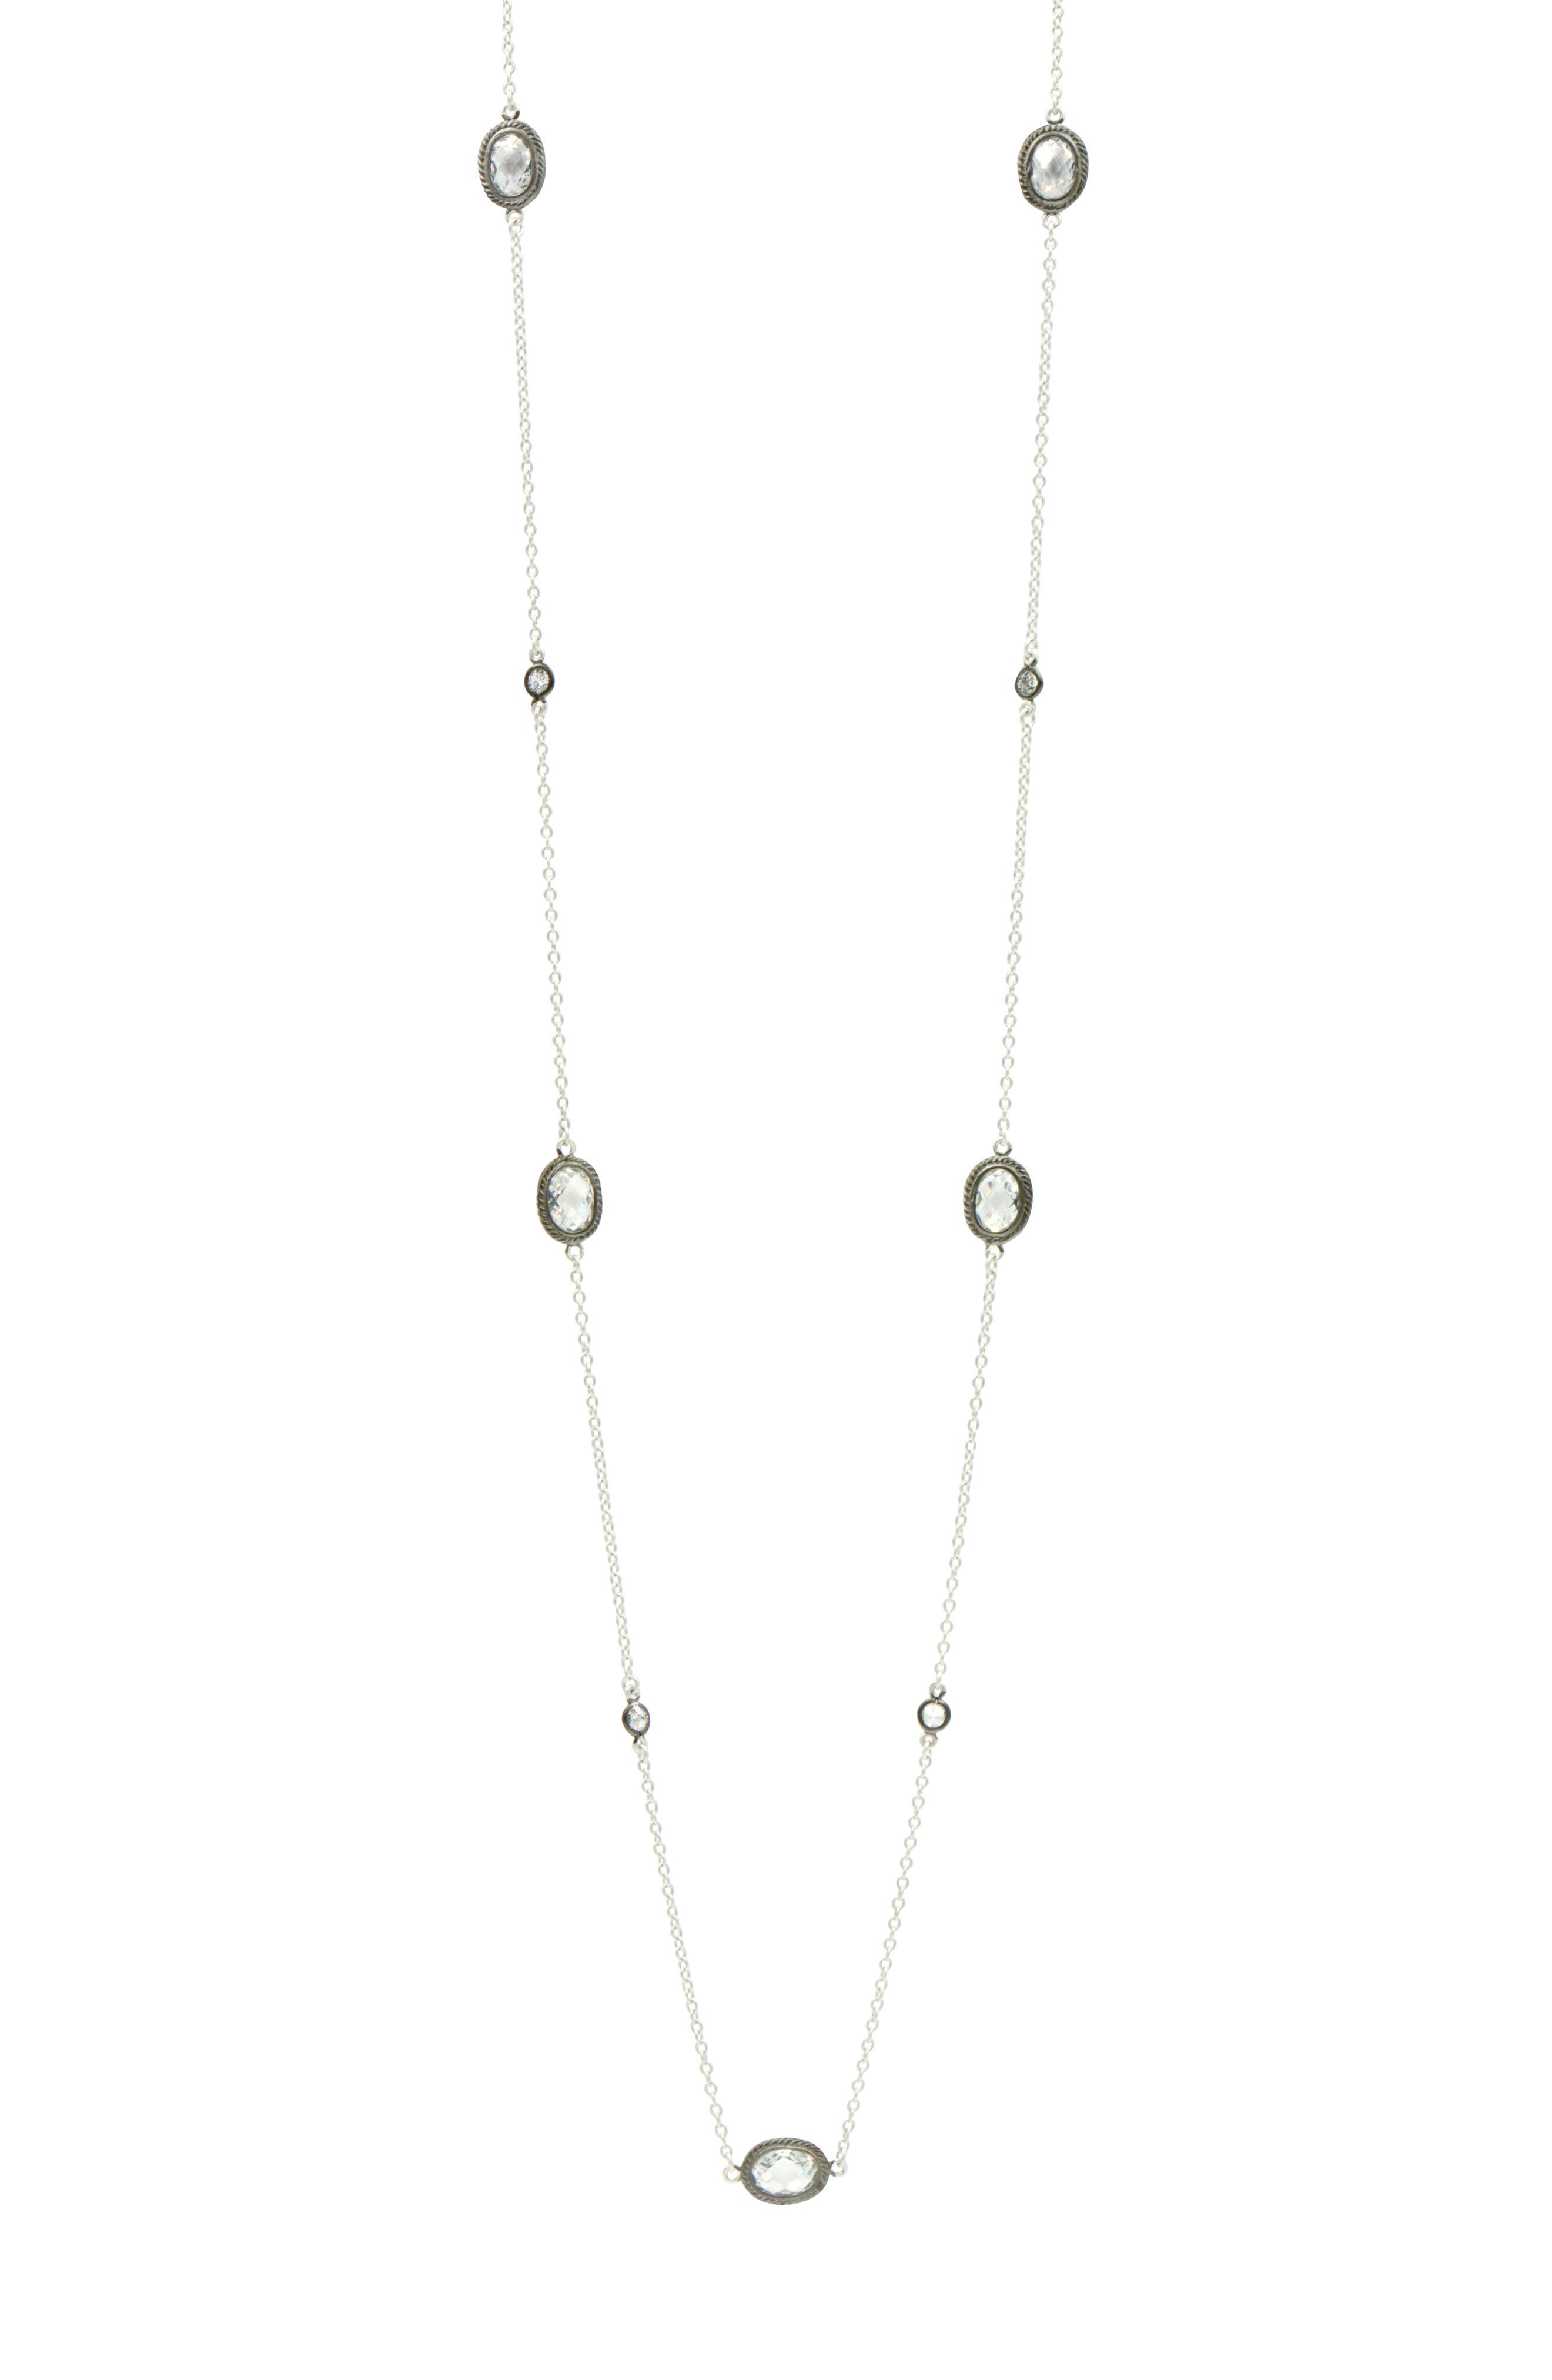 Signature Raindrop Station Necklace,                             Main thumbnail 1, color,                             Black/ Silver